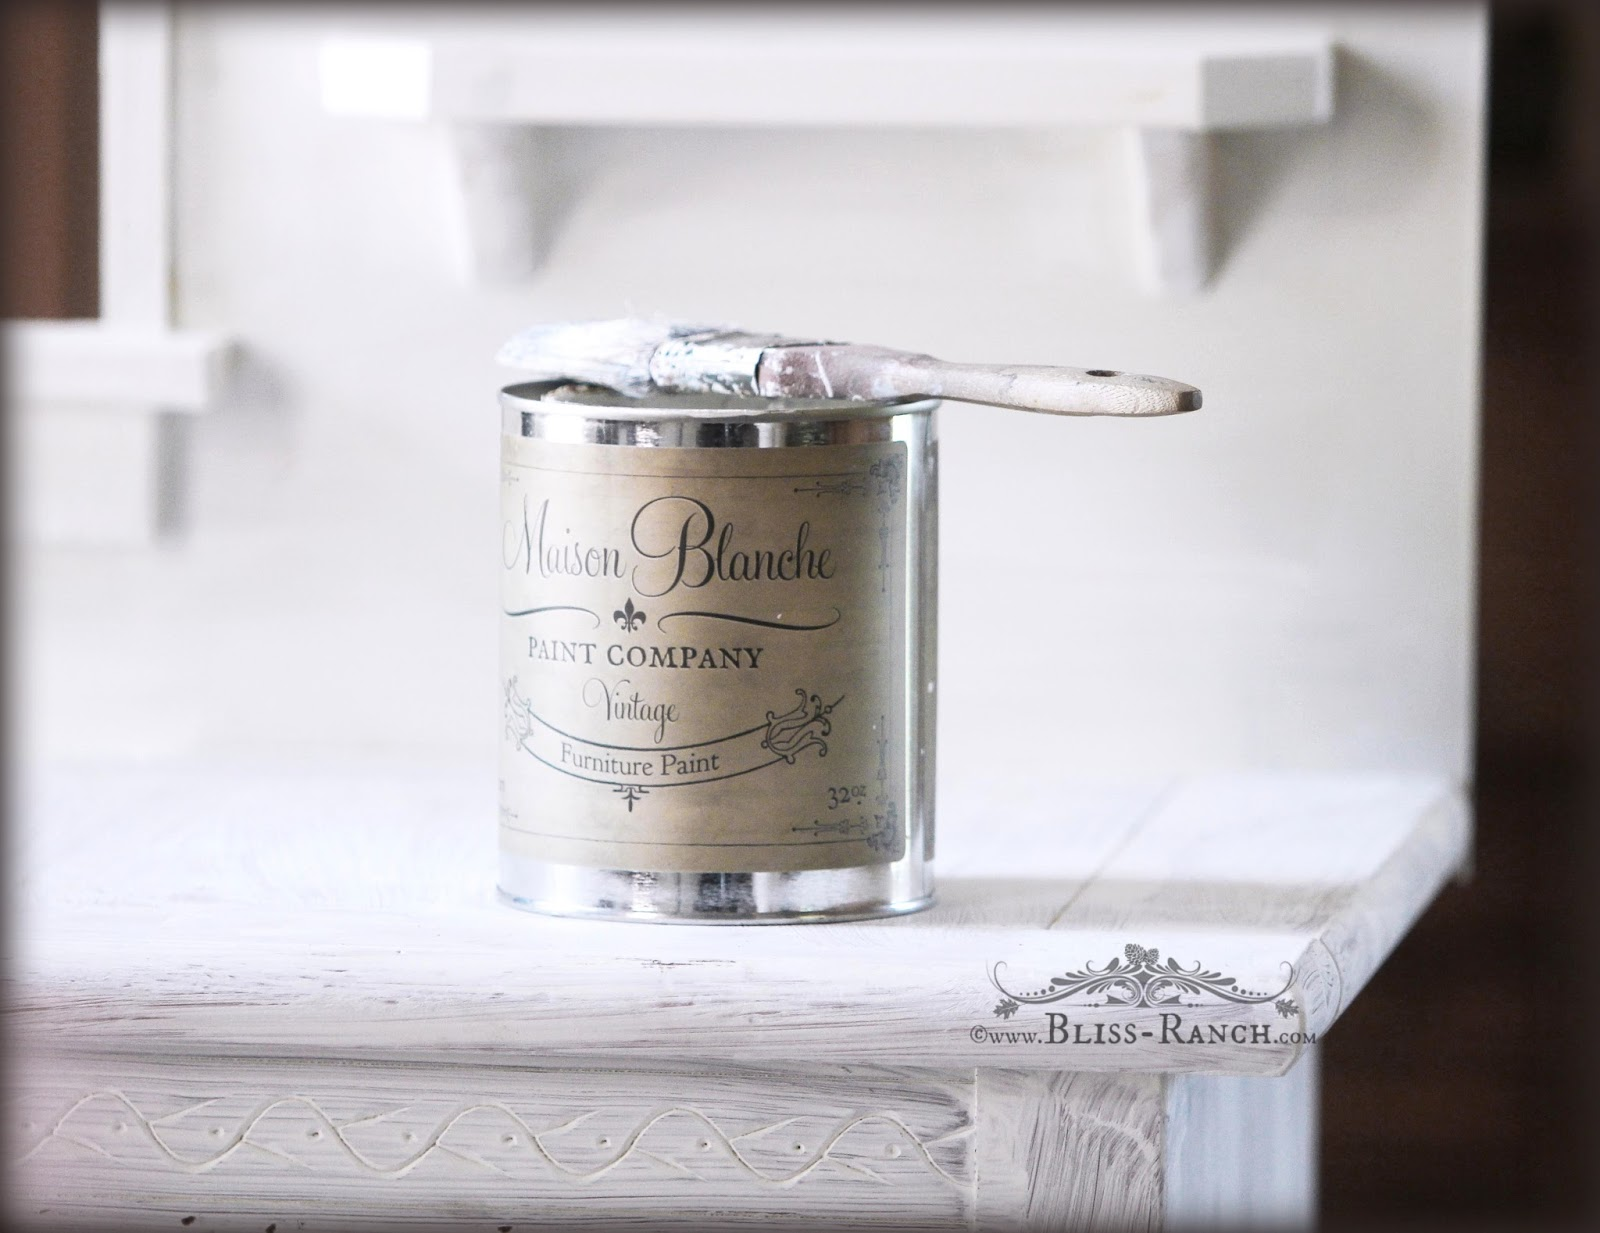 Recycled Nightstand Play Kitchen Bliss-Ranch.com  #maisonblanchepaint  #paintedfurniture #ad